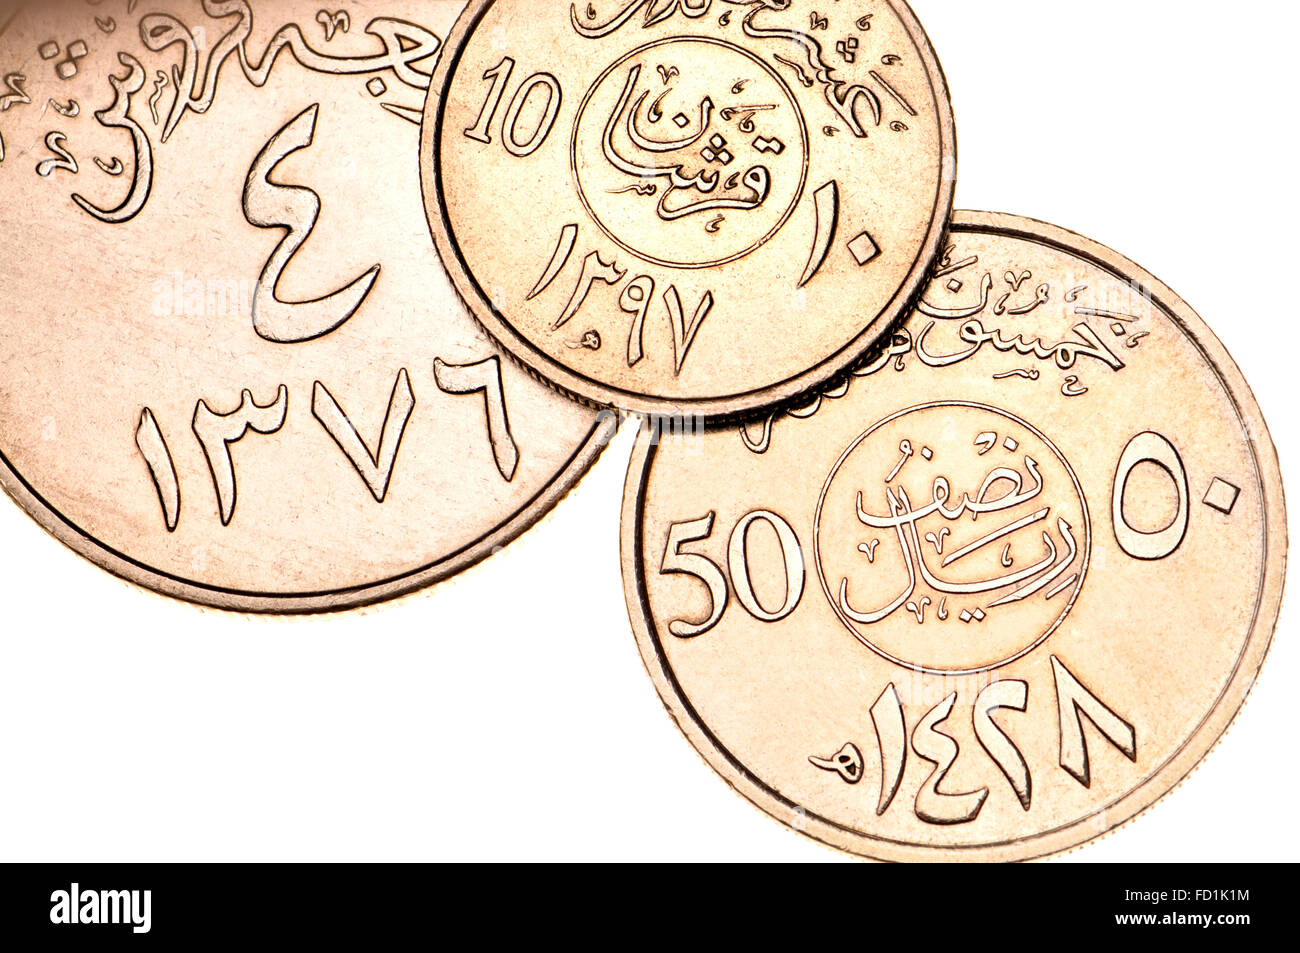 Coins of Saudi Arabia showing Arabic writing and symbols in Eastern Arabic script and dates in the Islamic calendar - Stock Image